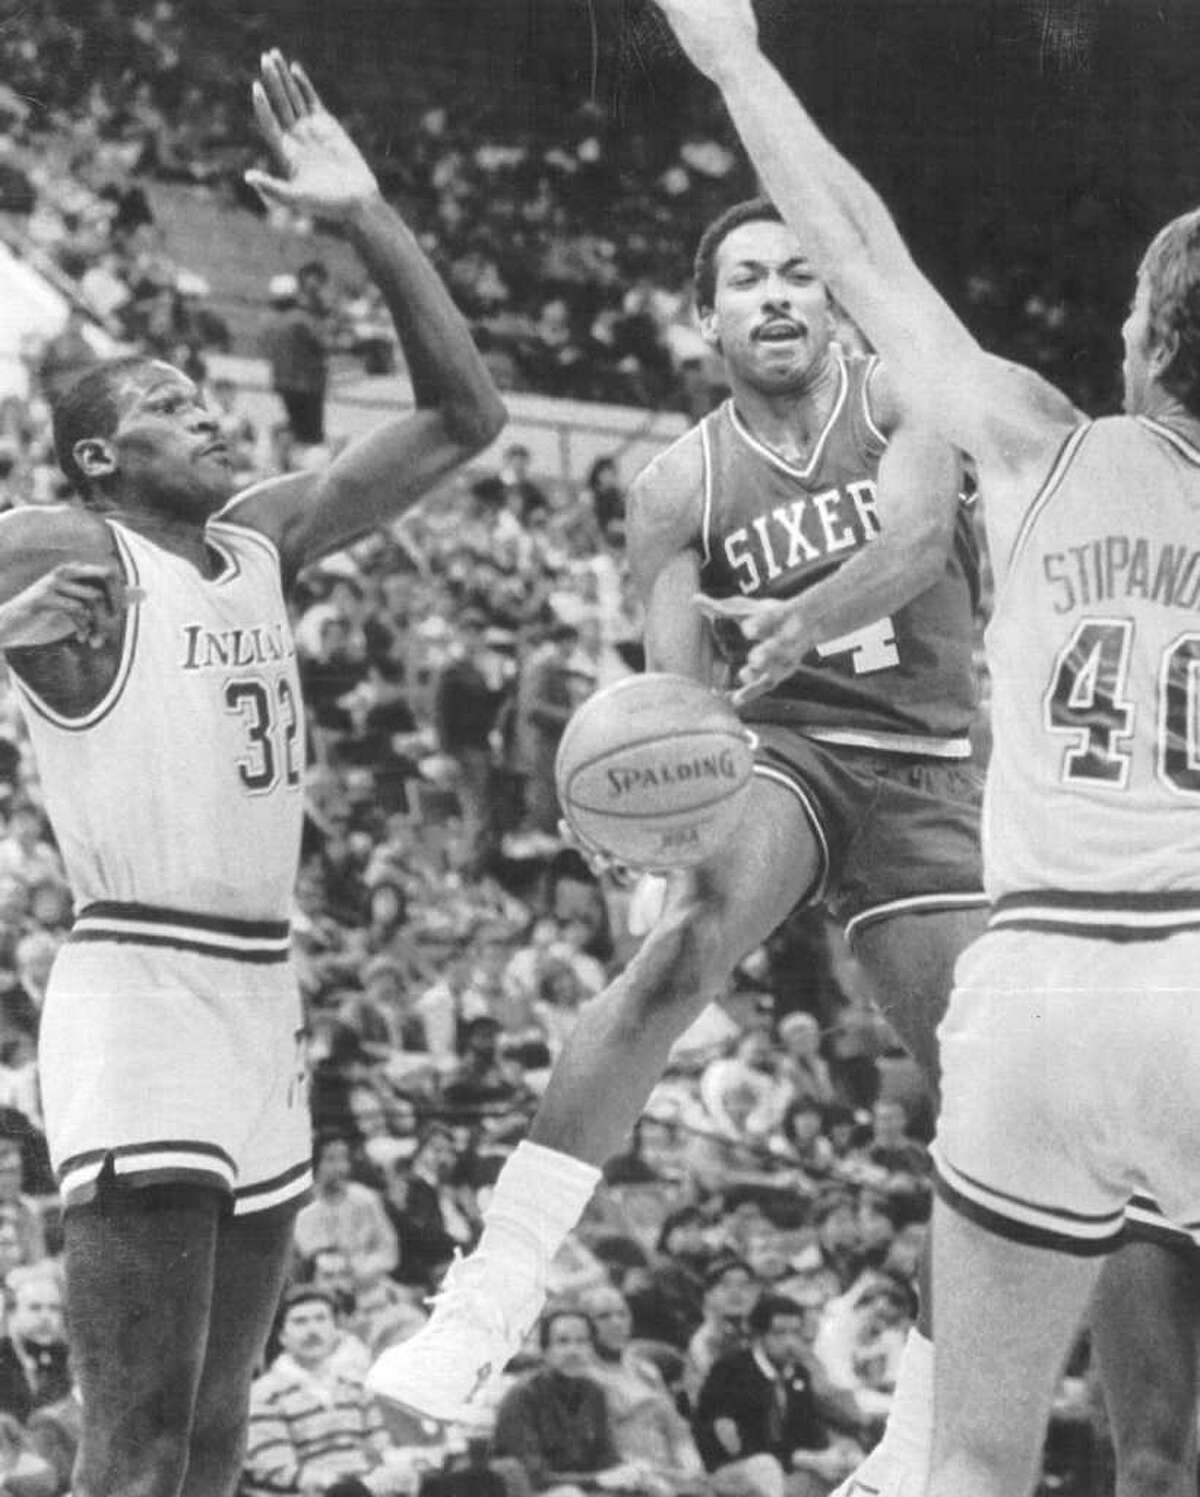 Clint Richardson Jr., 1983, Philadelphia 76ers: Richardson starred at O'Dea and Seattle U before being drafted by the Sixers in 1979. During the 1982-83 NBA season, the 6-foot-3 guard found himself coming off the bench for a team that included Moses Malone, Julius Erving, Maurice Cheeks, Andrew Toney and Bobby Jones. That Sixers team swept the Los Angeles Lakers in the Finals and lost just one game the entire postseason. Richardson, whose father was a Washington State track star, finished his career with the Indiana Pacers and returned to Seattle, where he has worked as a teacher and administrator.